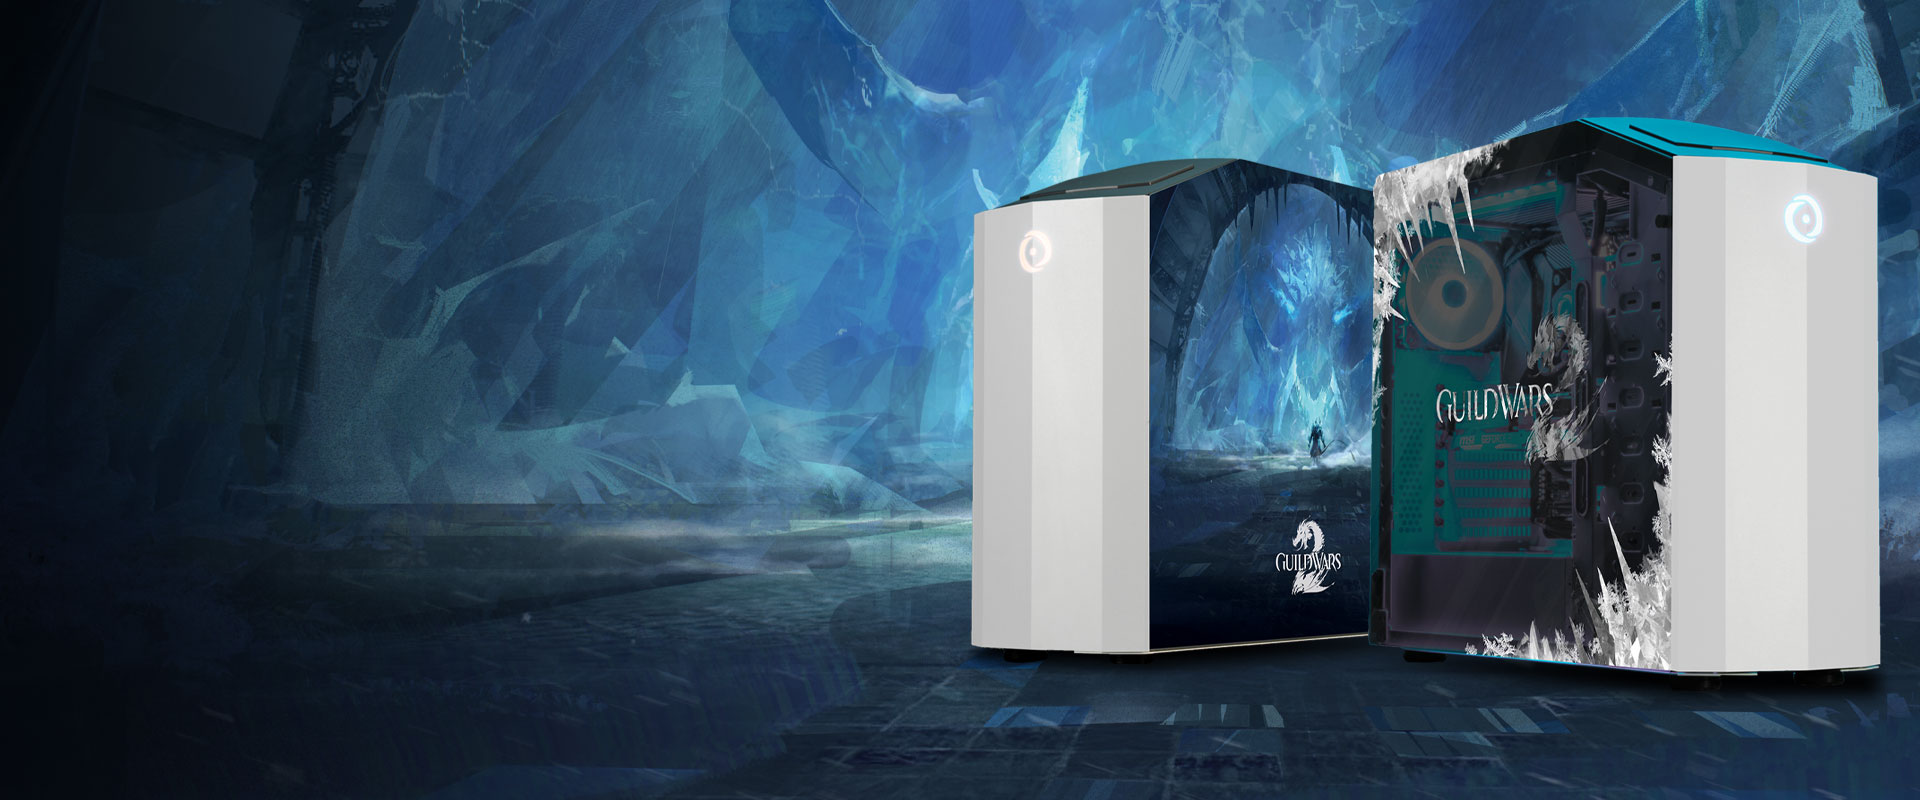 ORIGIN PC MILLENNIUM Worldwide Giveaway Powered by ORIGIN PC and Guild Wars 2